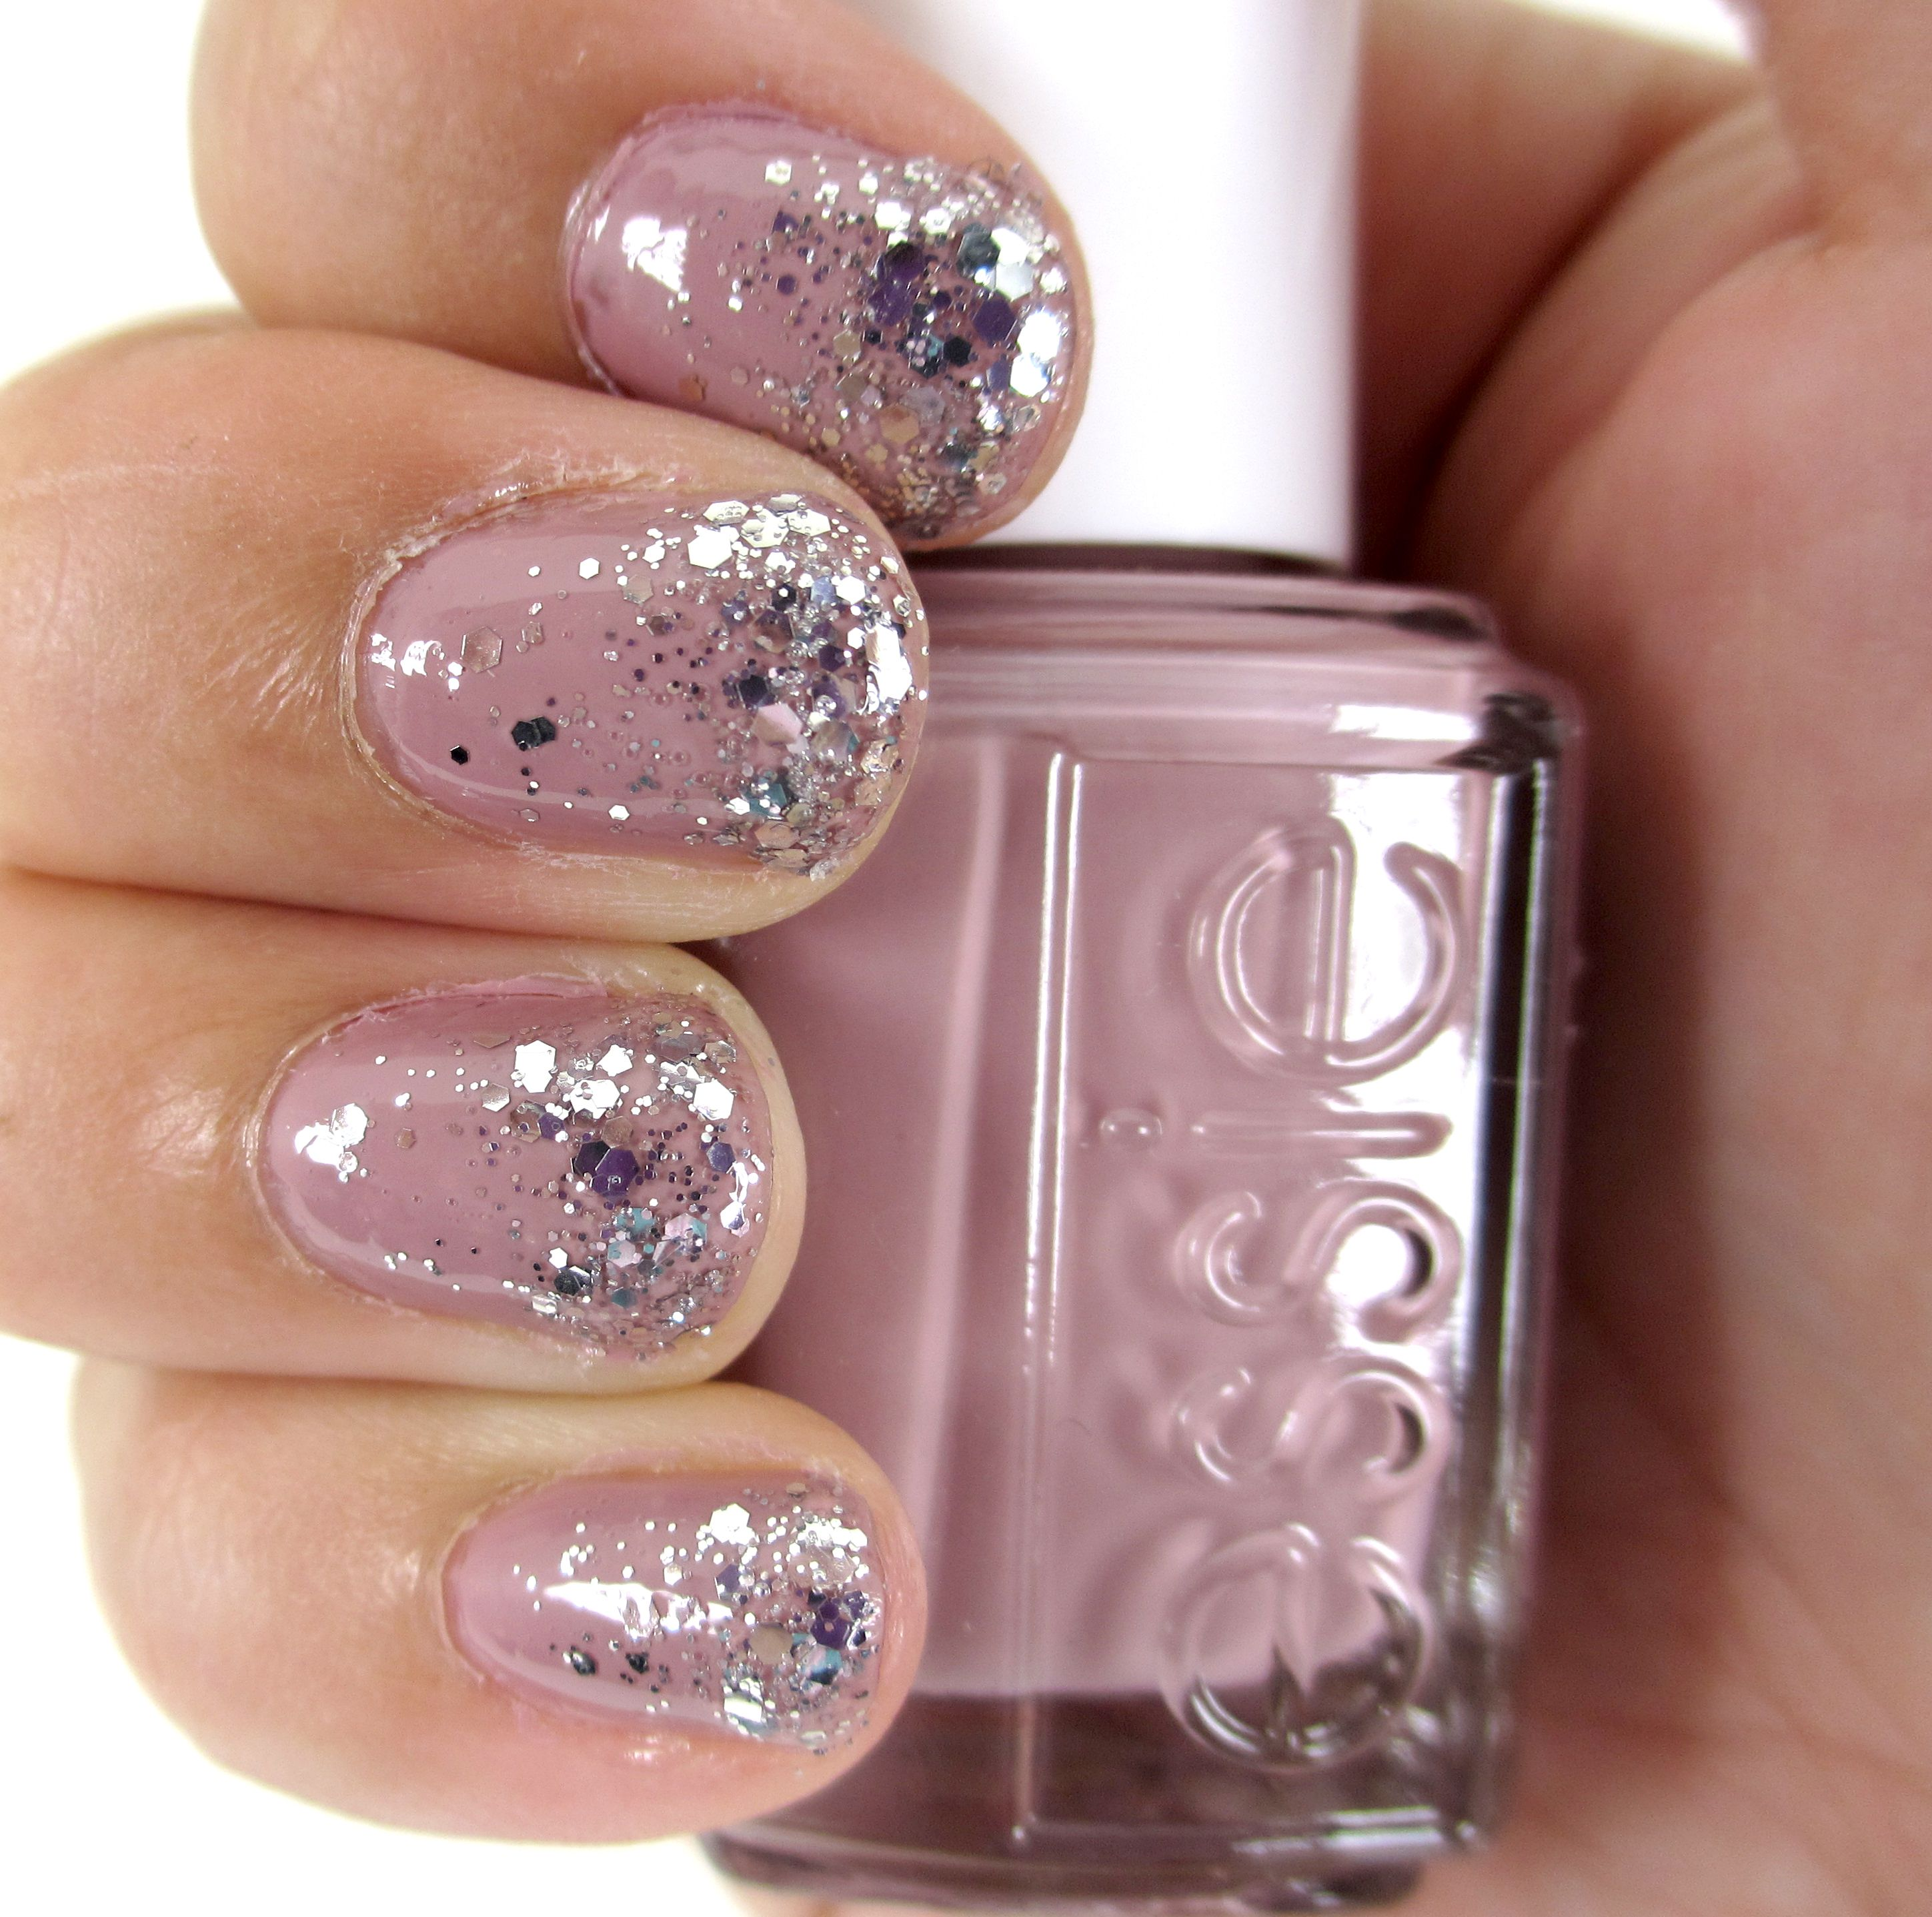 Valentines day nail art glitter gradient makeup pinterest valentines day nail art glitter gradient prinsesfo Gallery